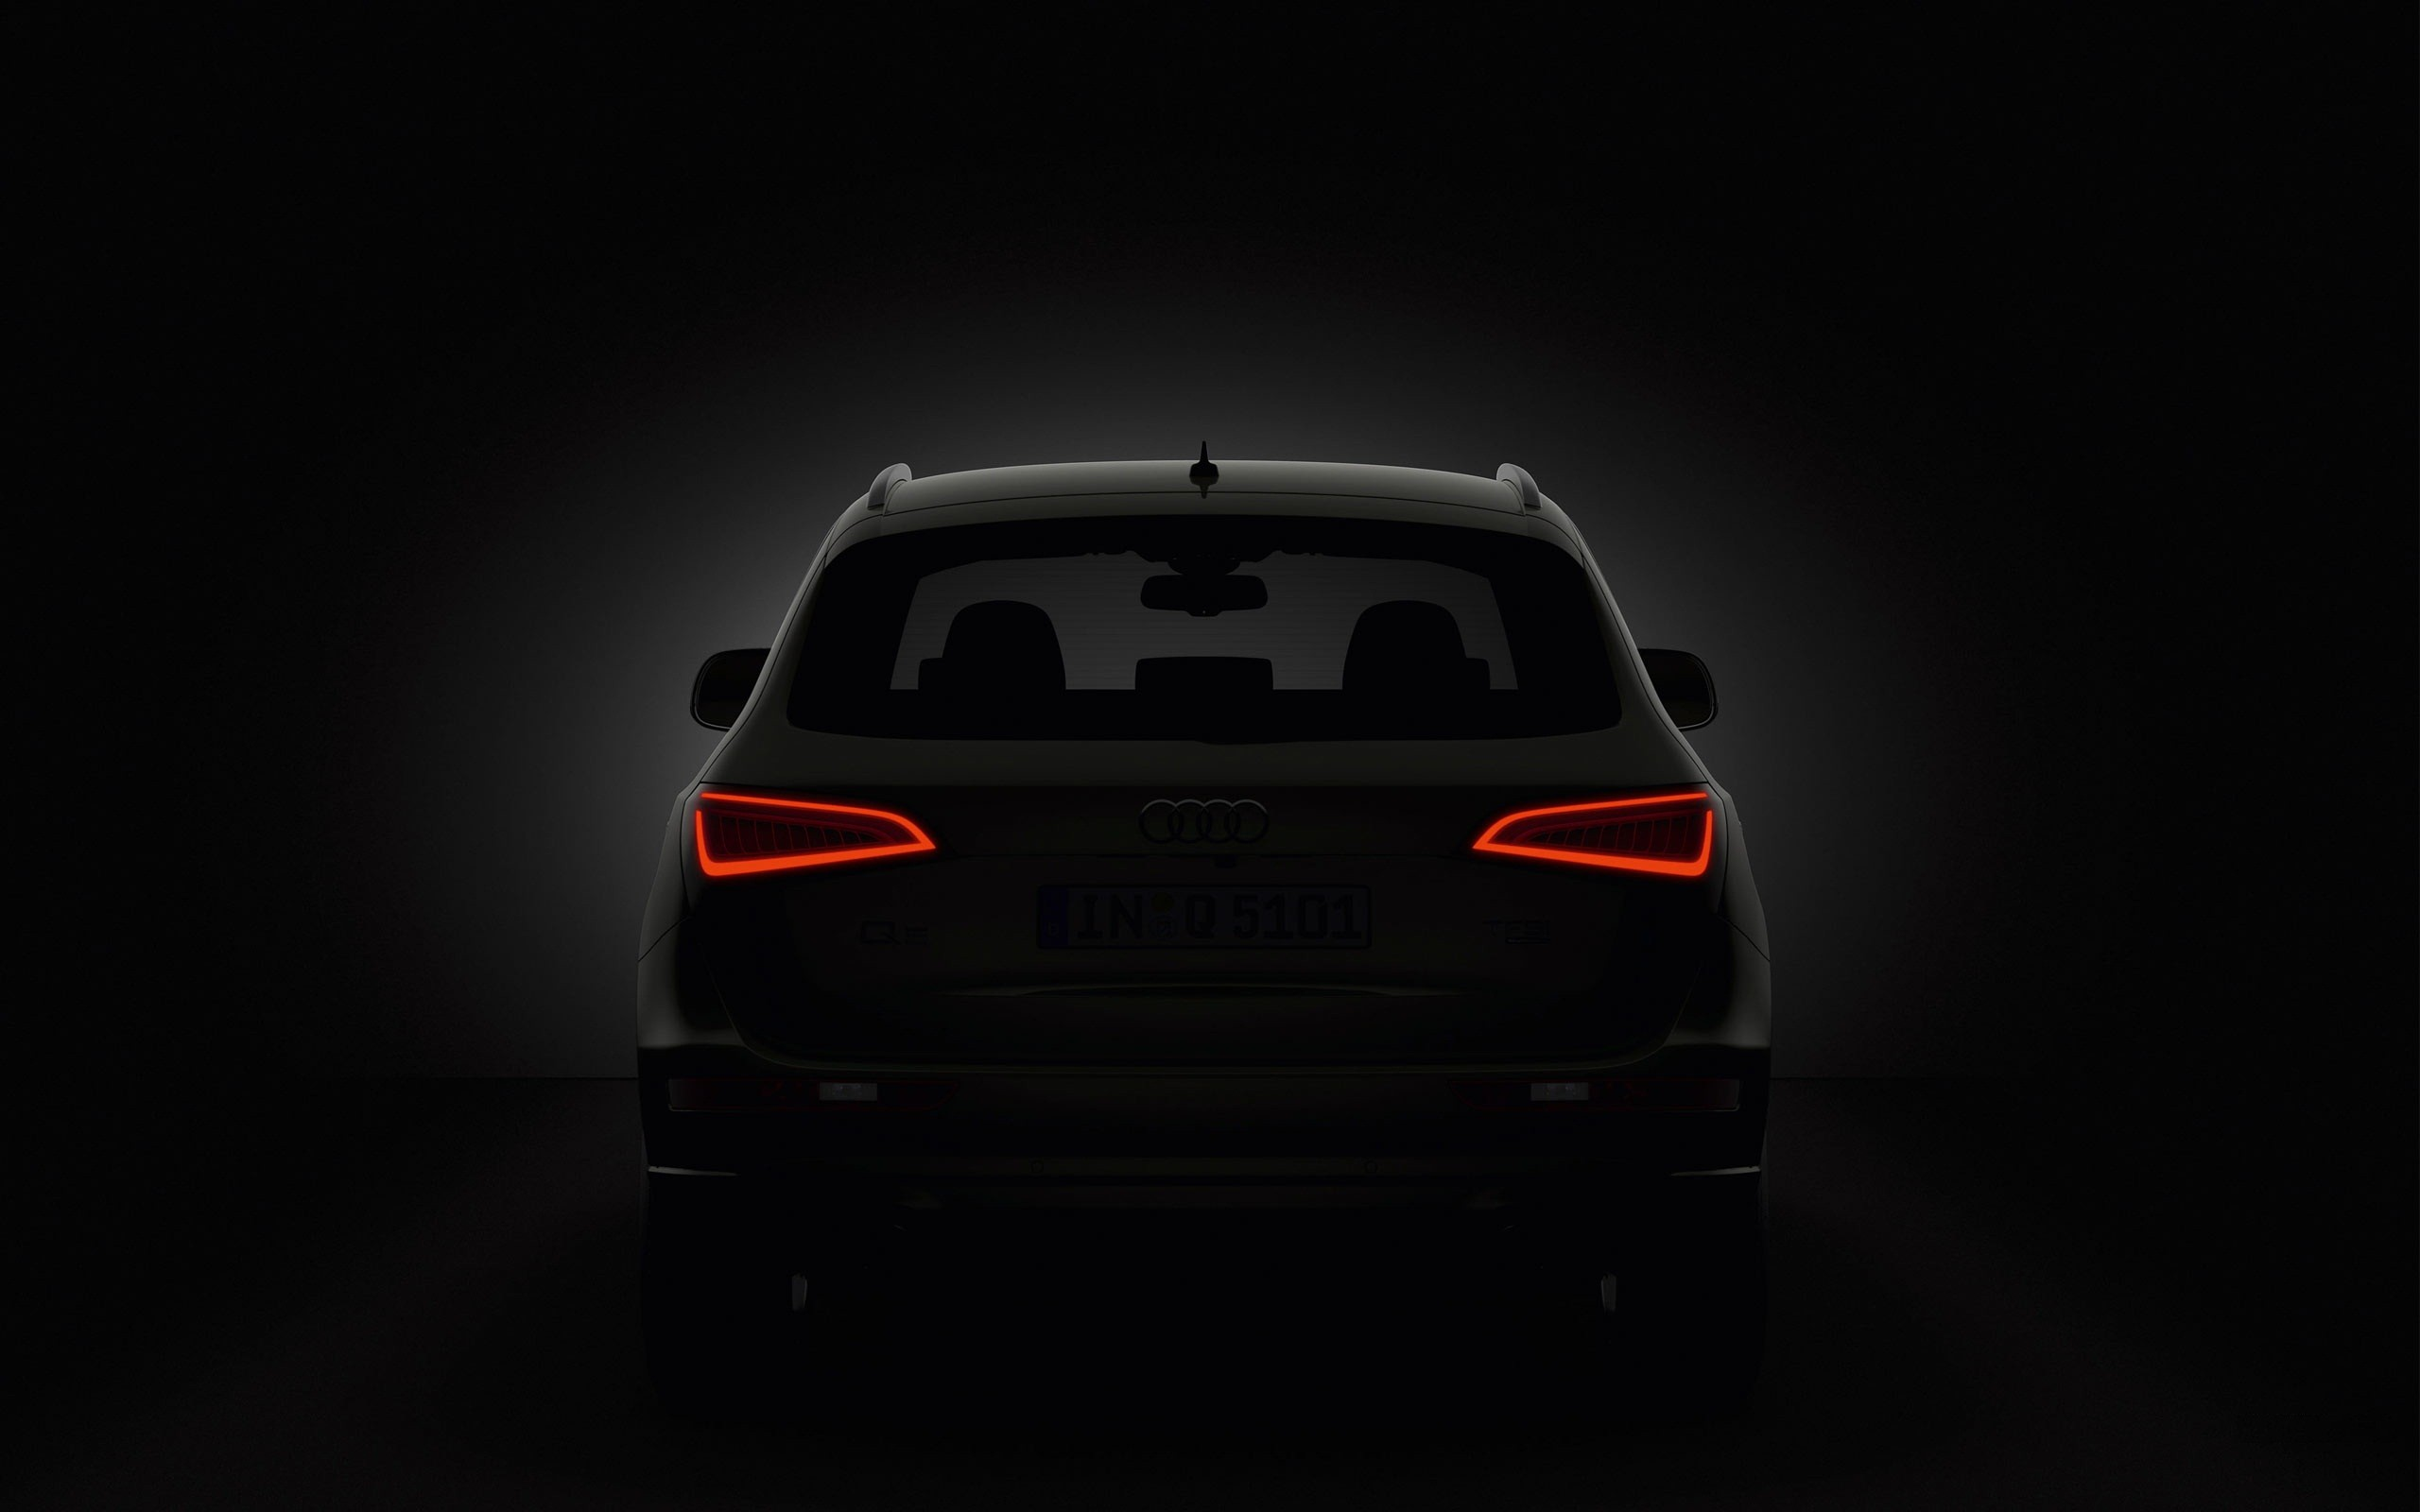 2560x1440 Audi Q5 Taillights Youtube Channel Cover